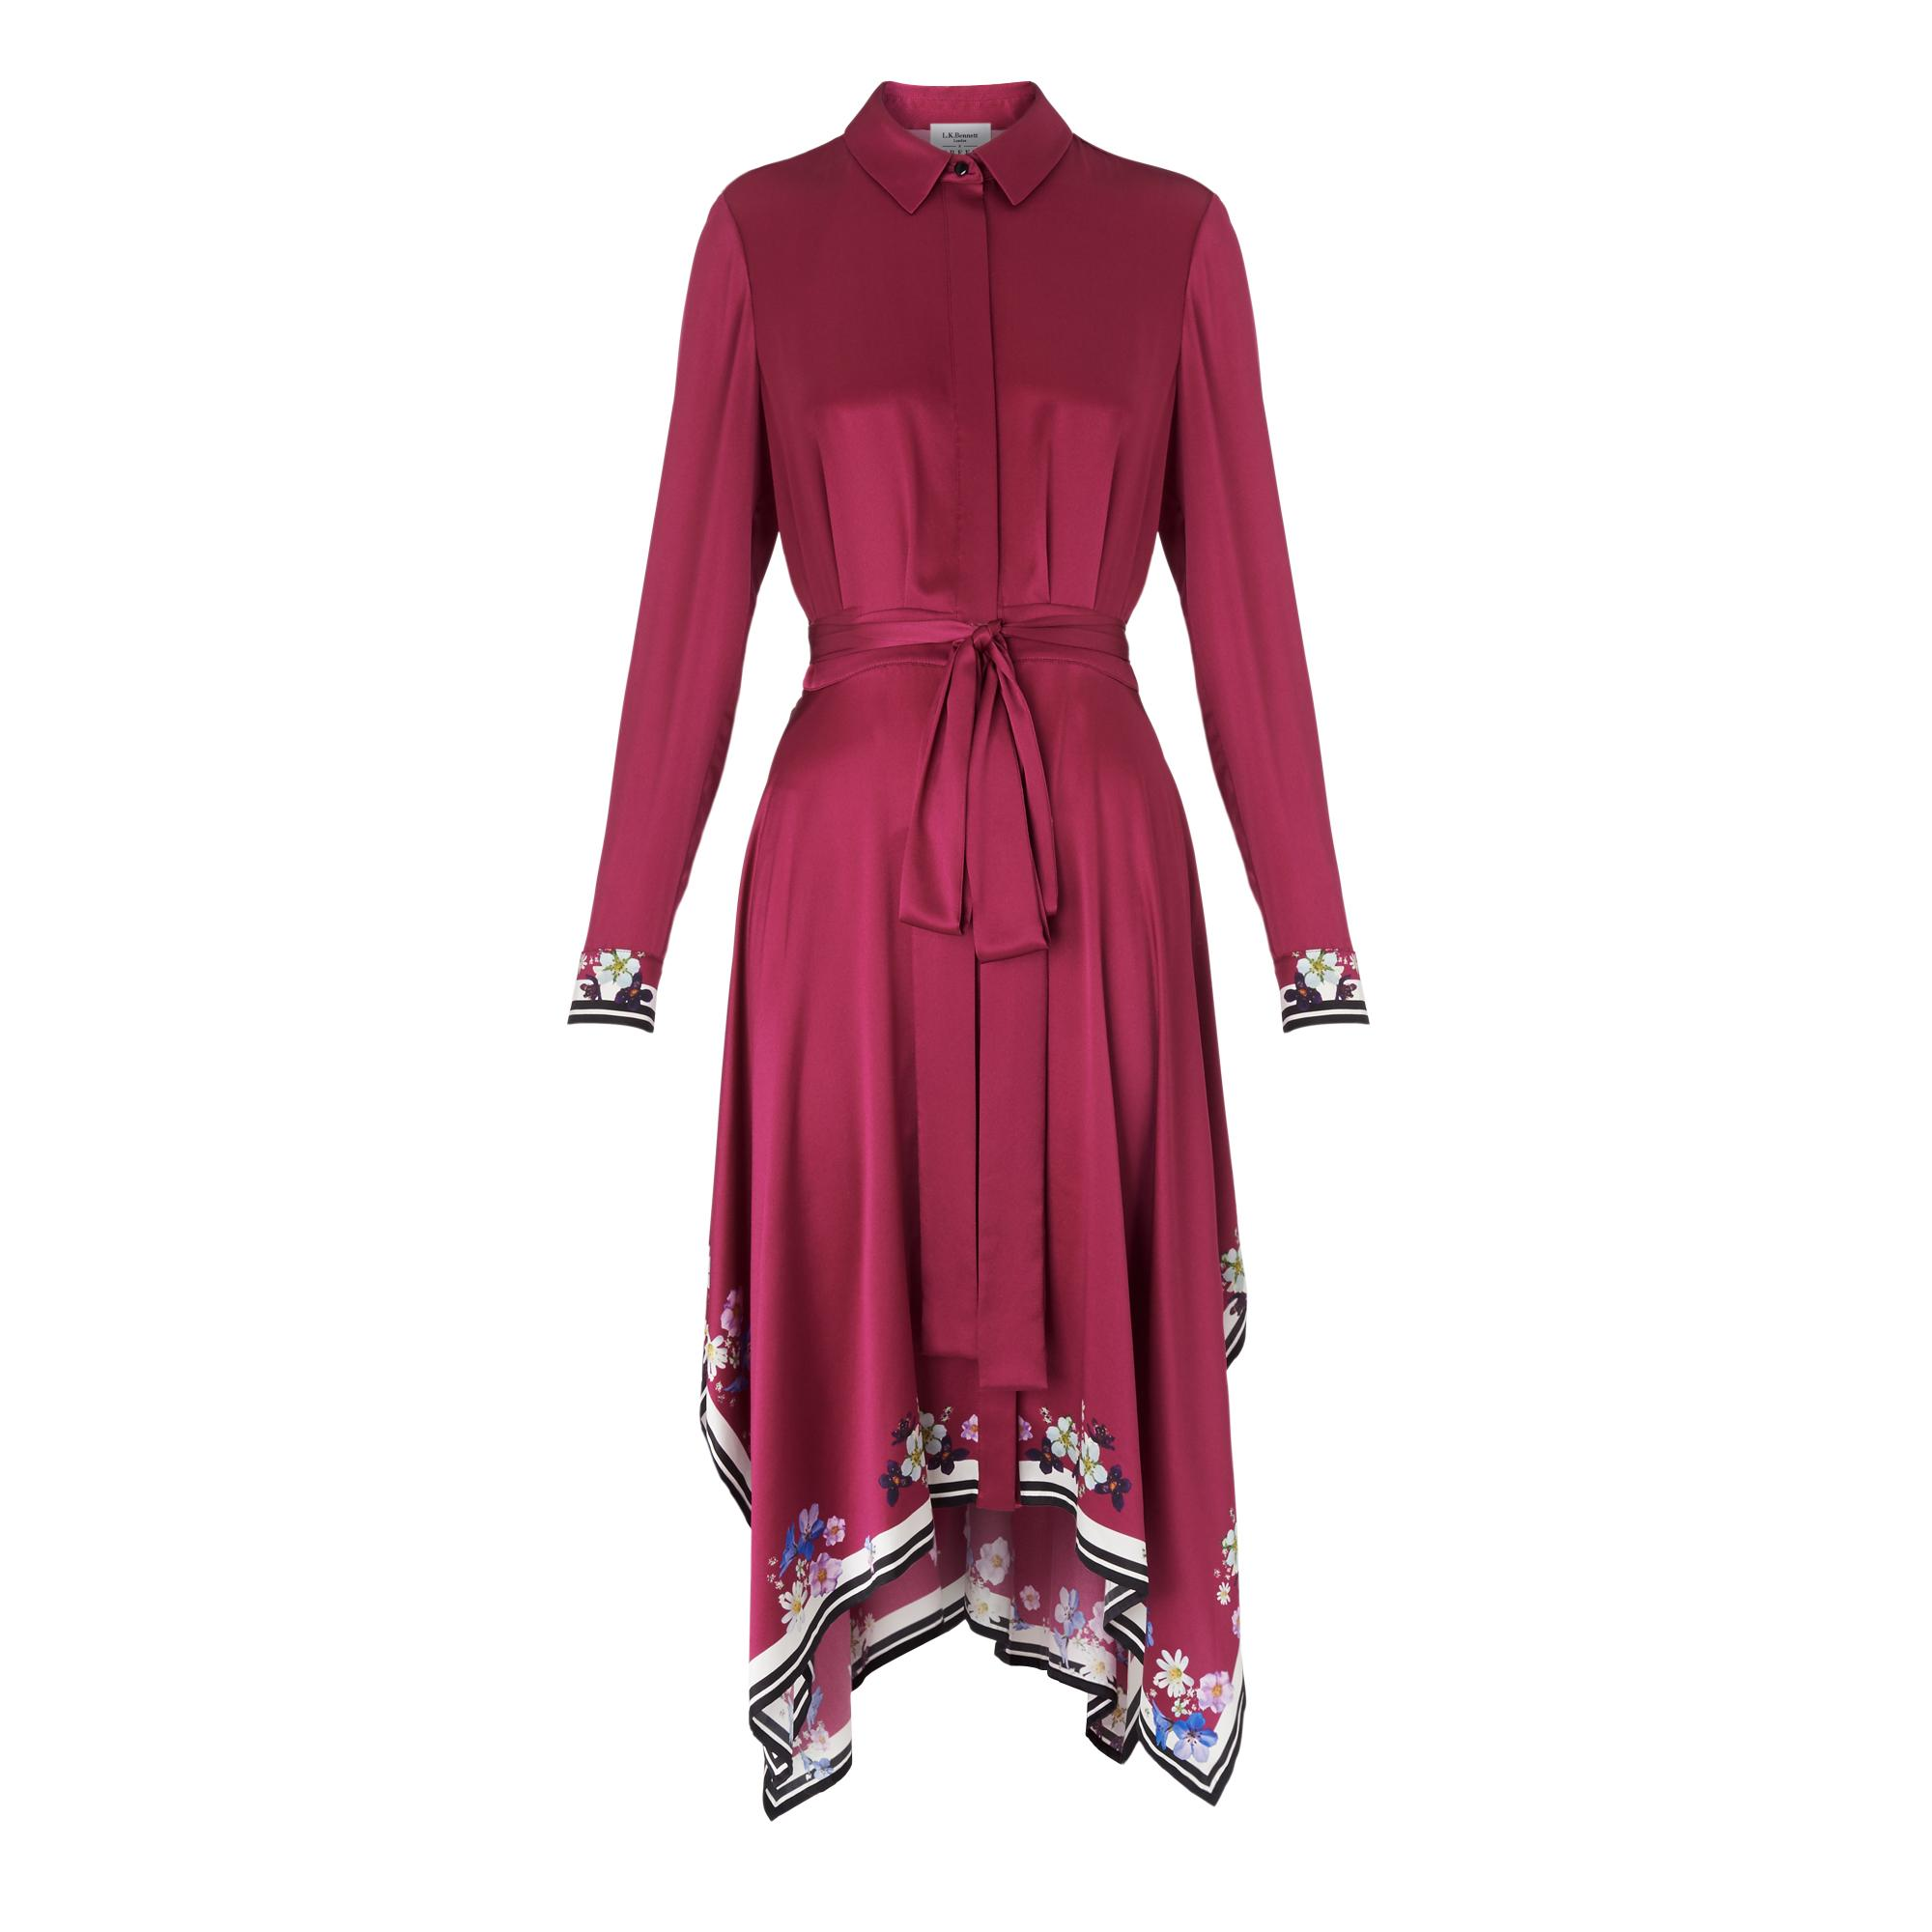 Devoto Pink Silk Dress